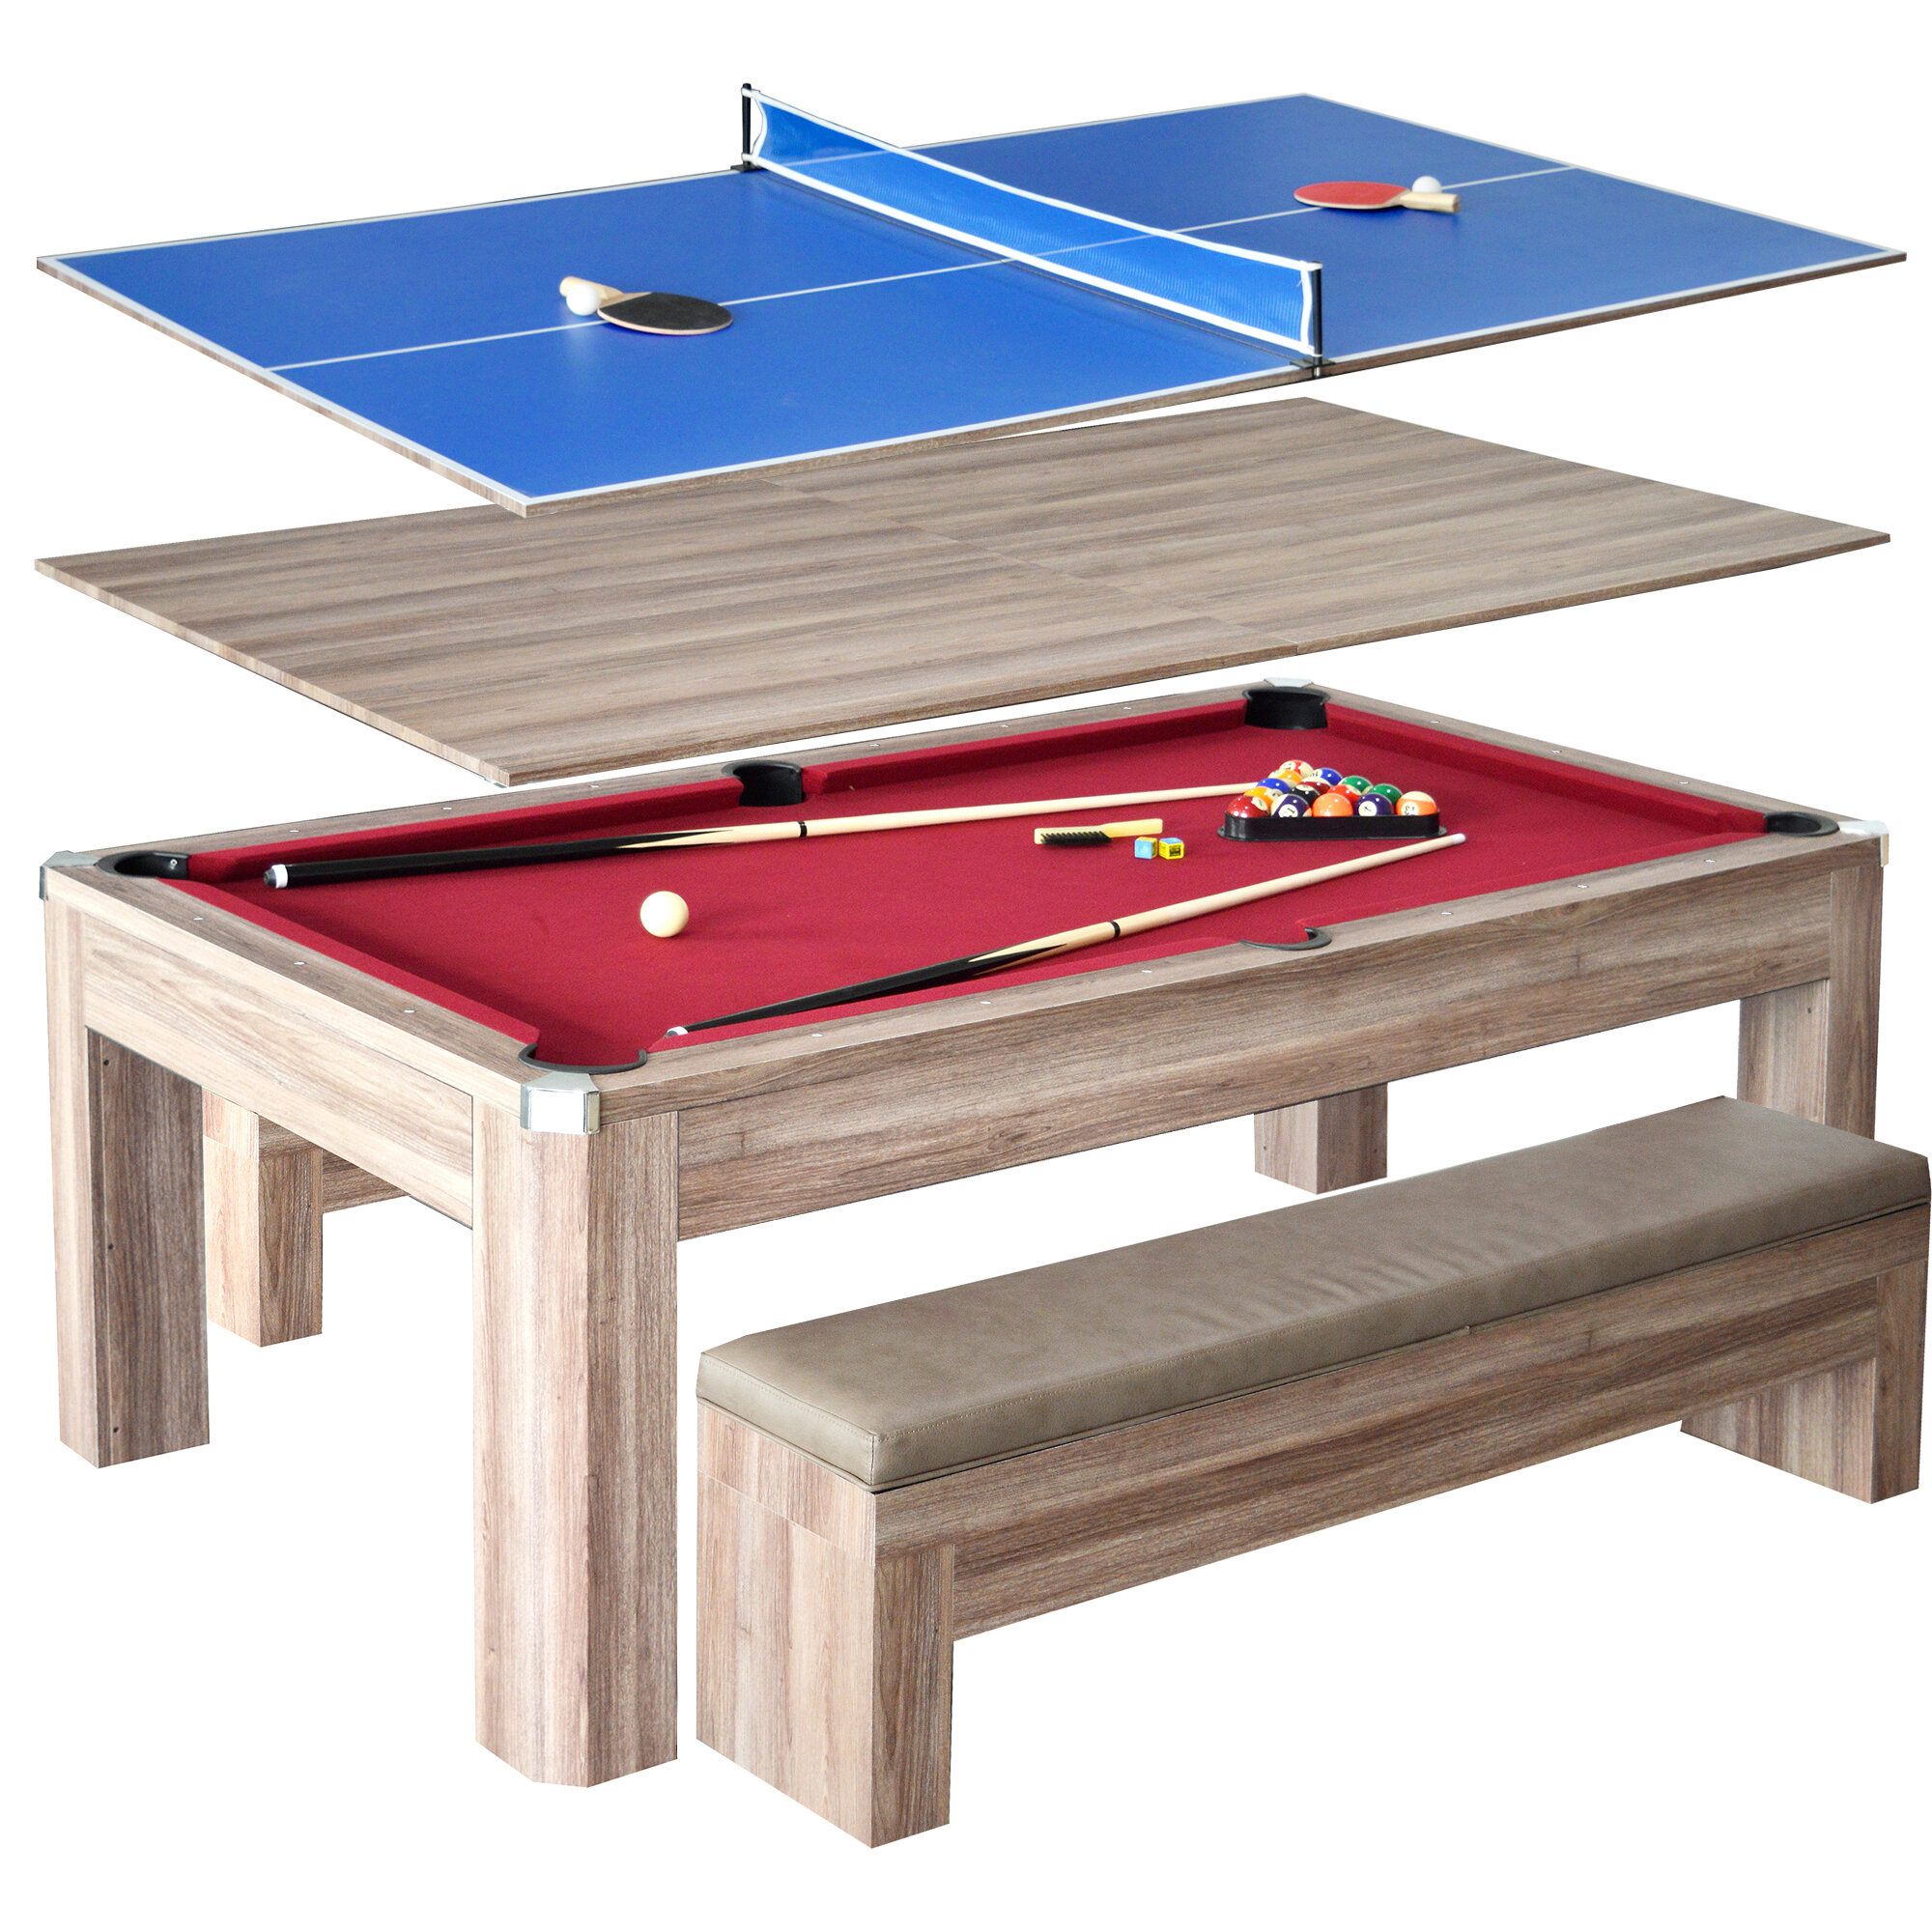 Hathaway games newport 2 piece 7 pool table set reviews wayfair